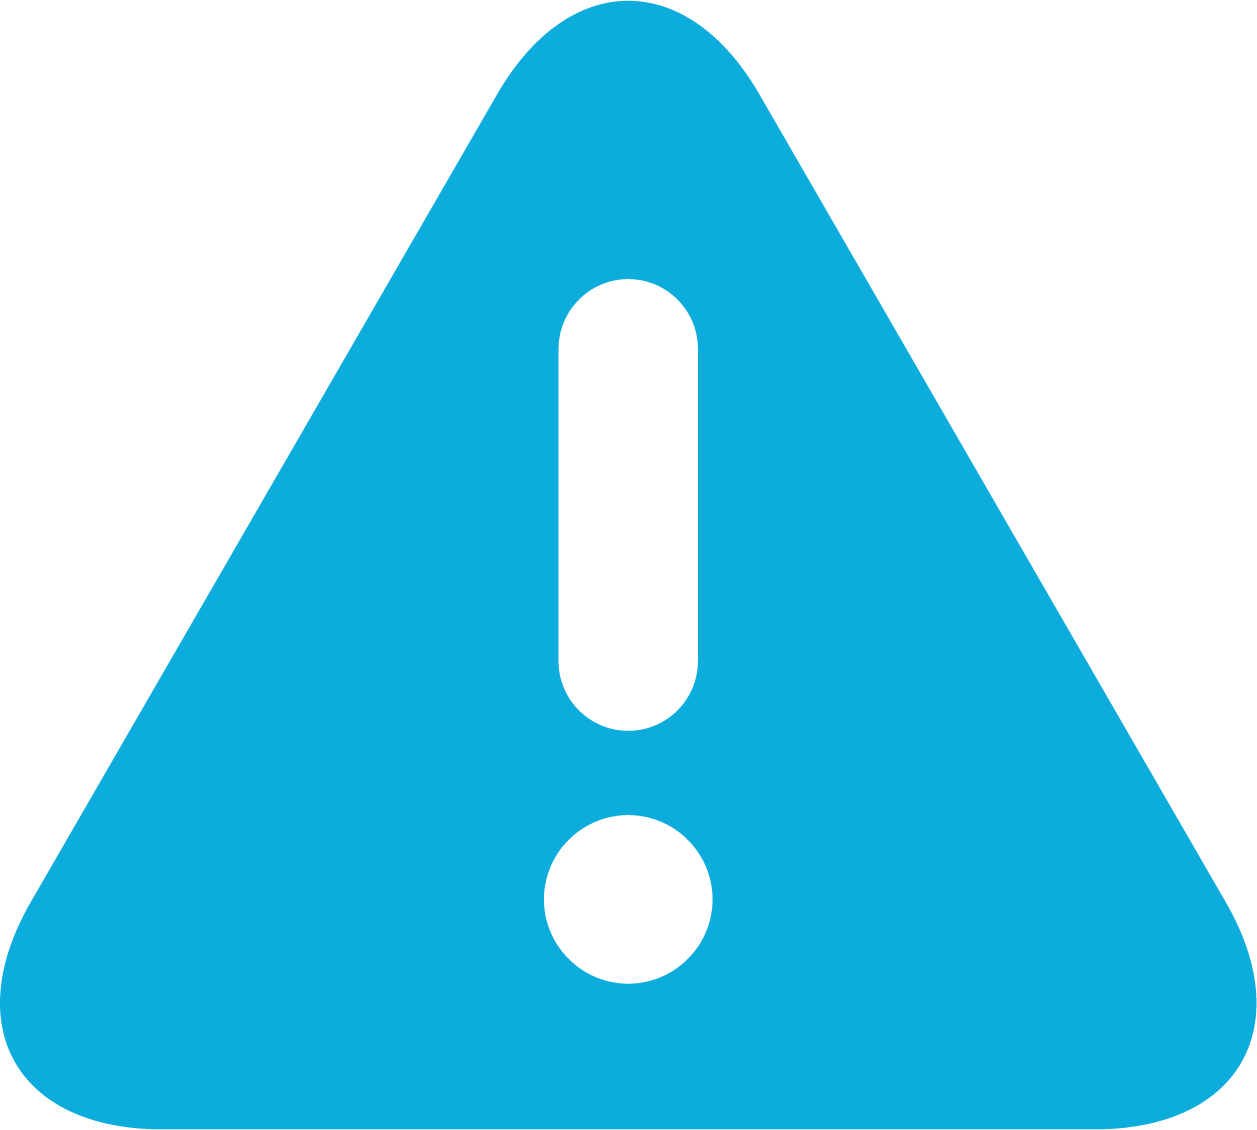 IT monitoring alert icon